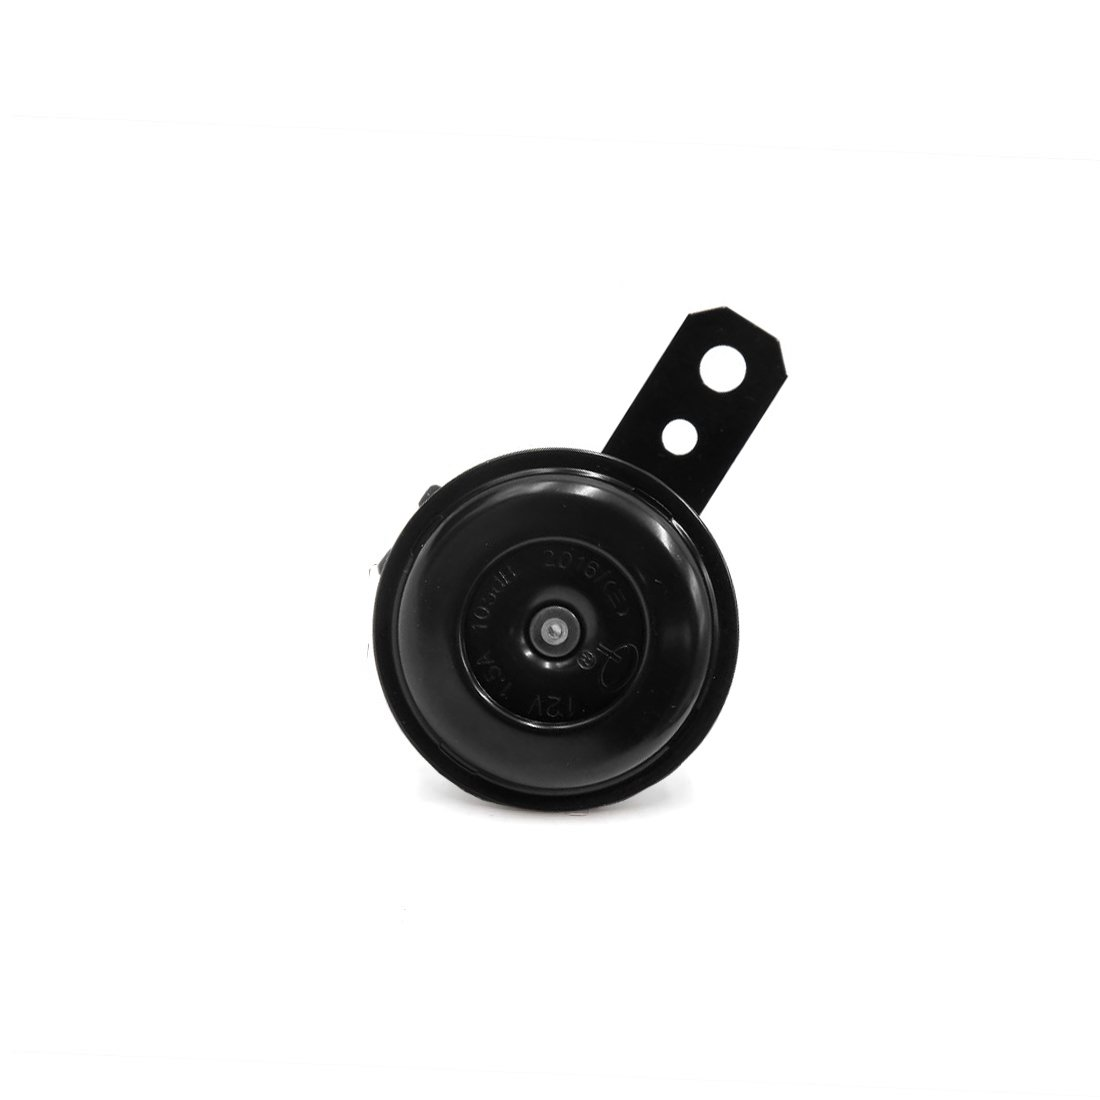 uxcell Universal Waterproof Round Loud Horn Speaker 12V 1.5A for Motorcycle